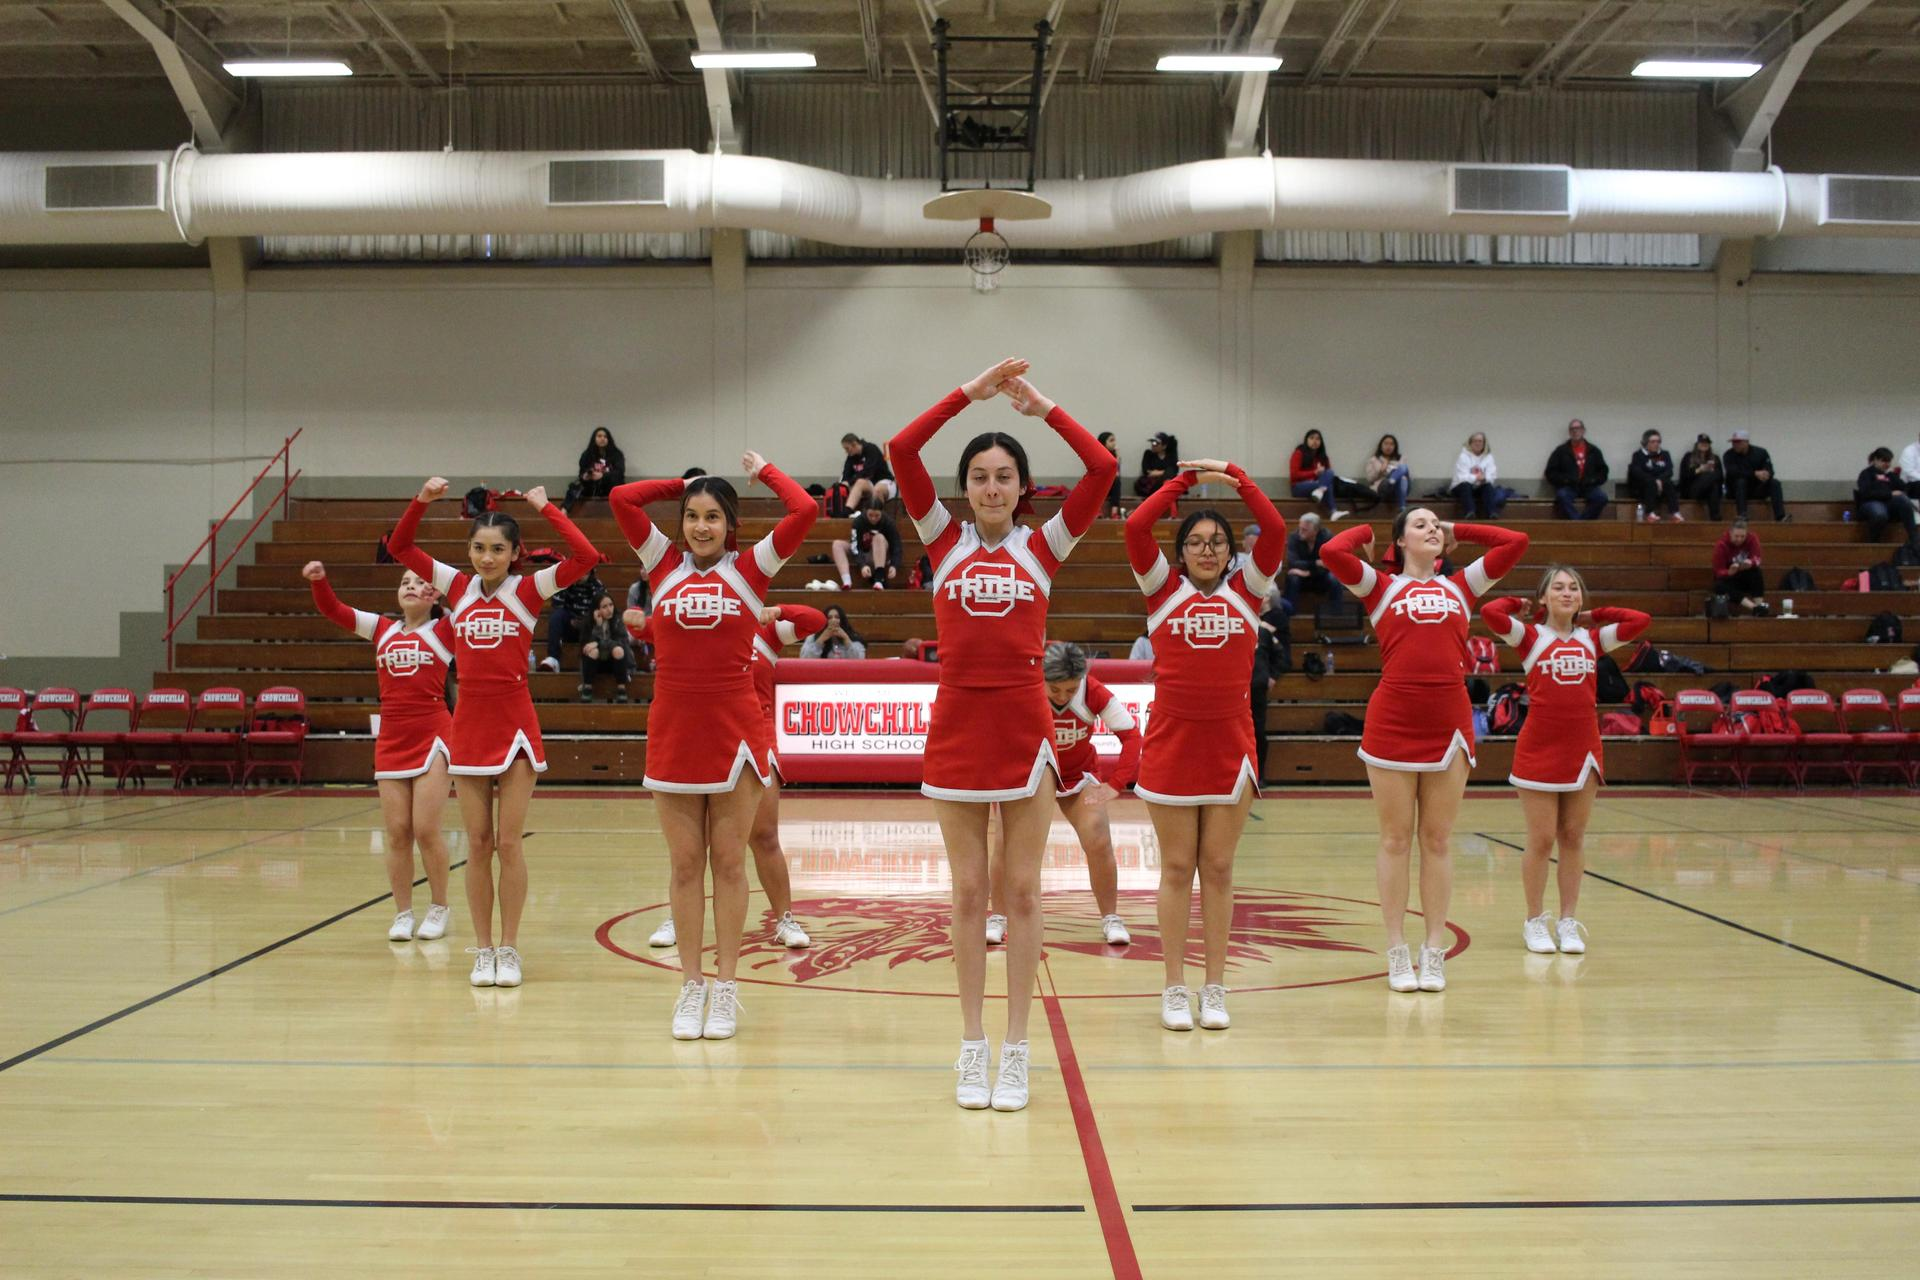 cheerleaders cheering